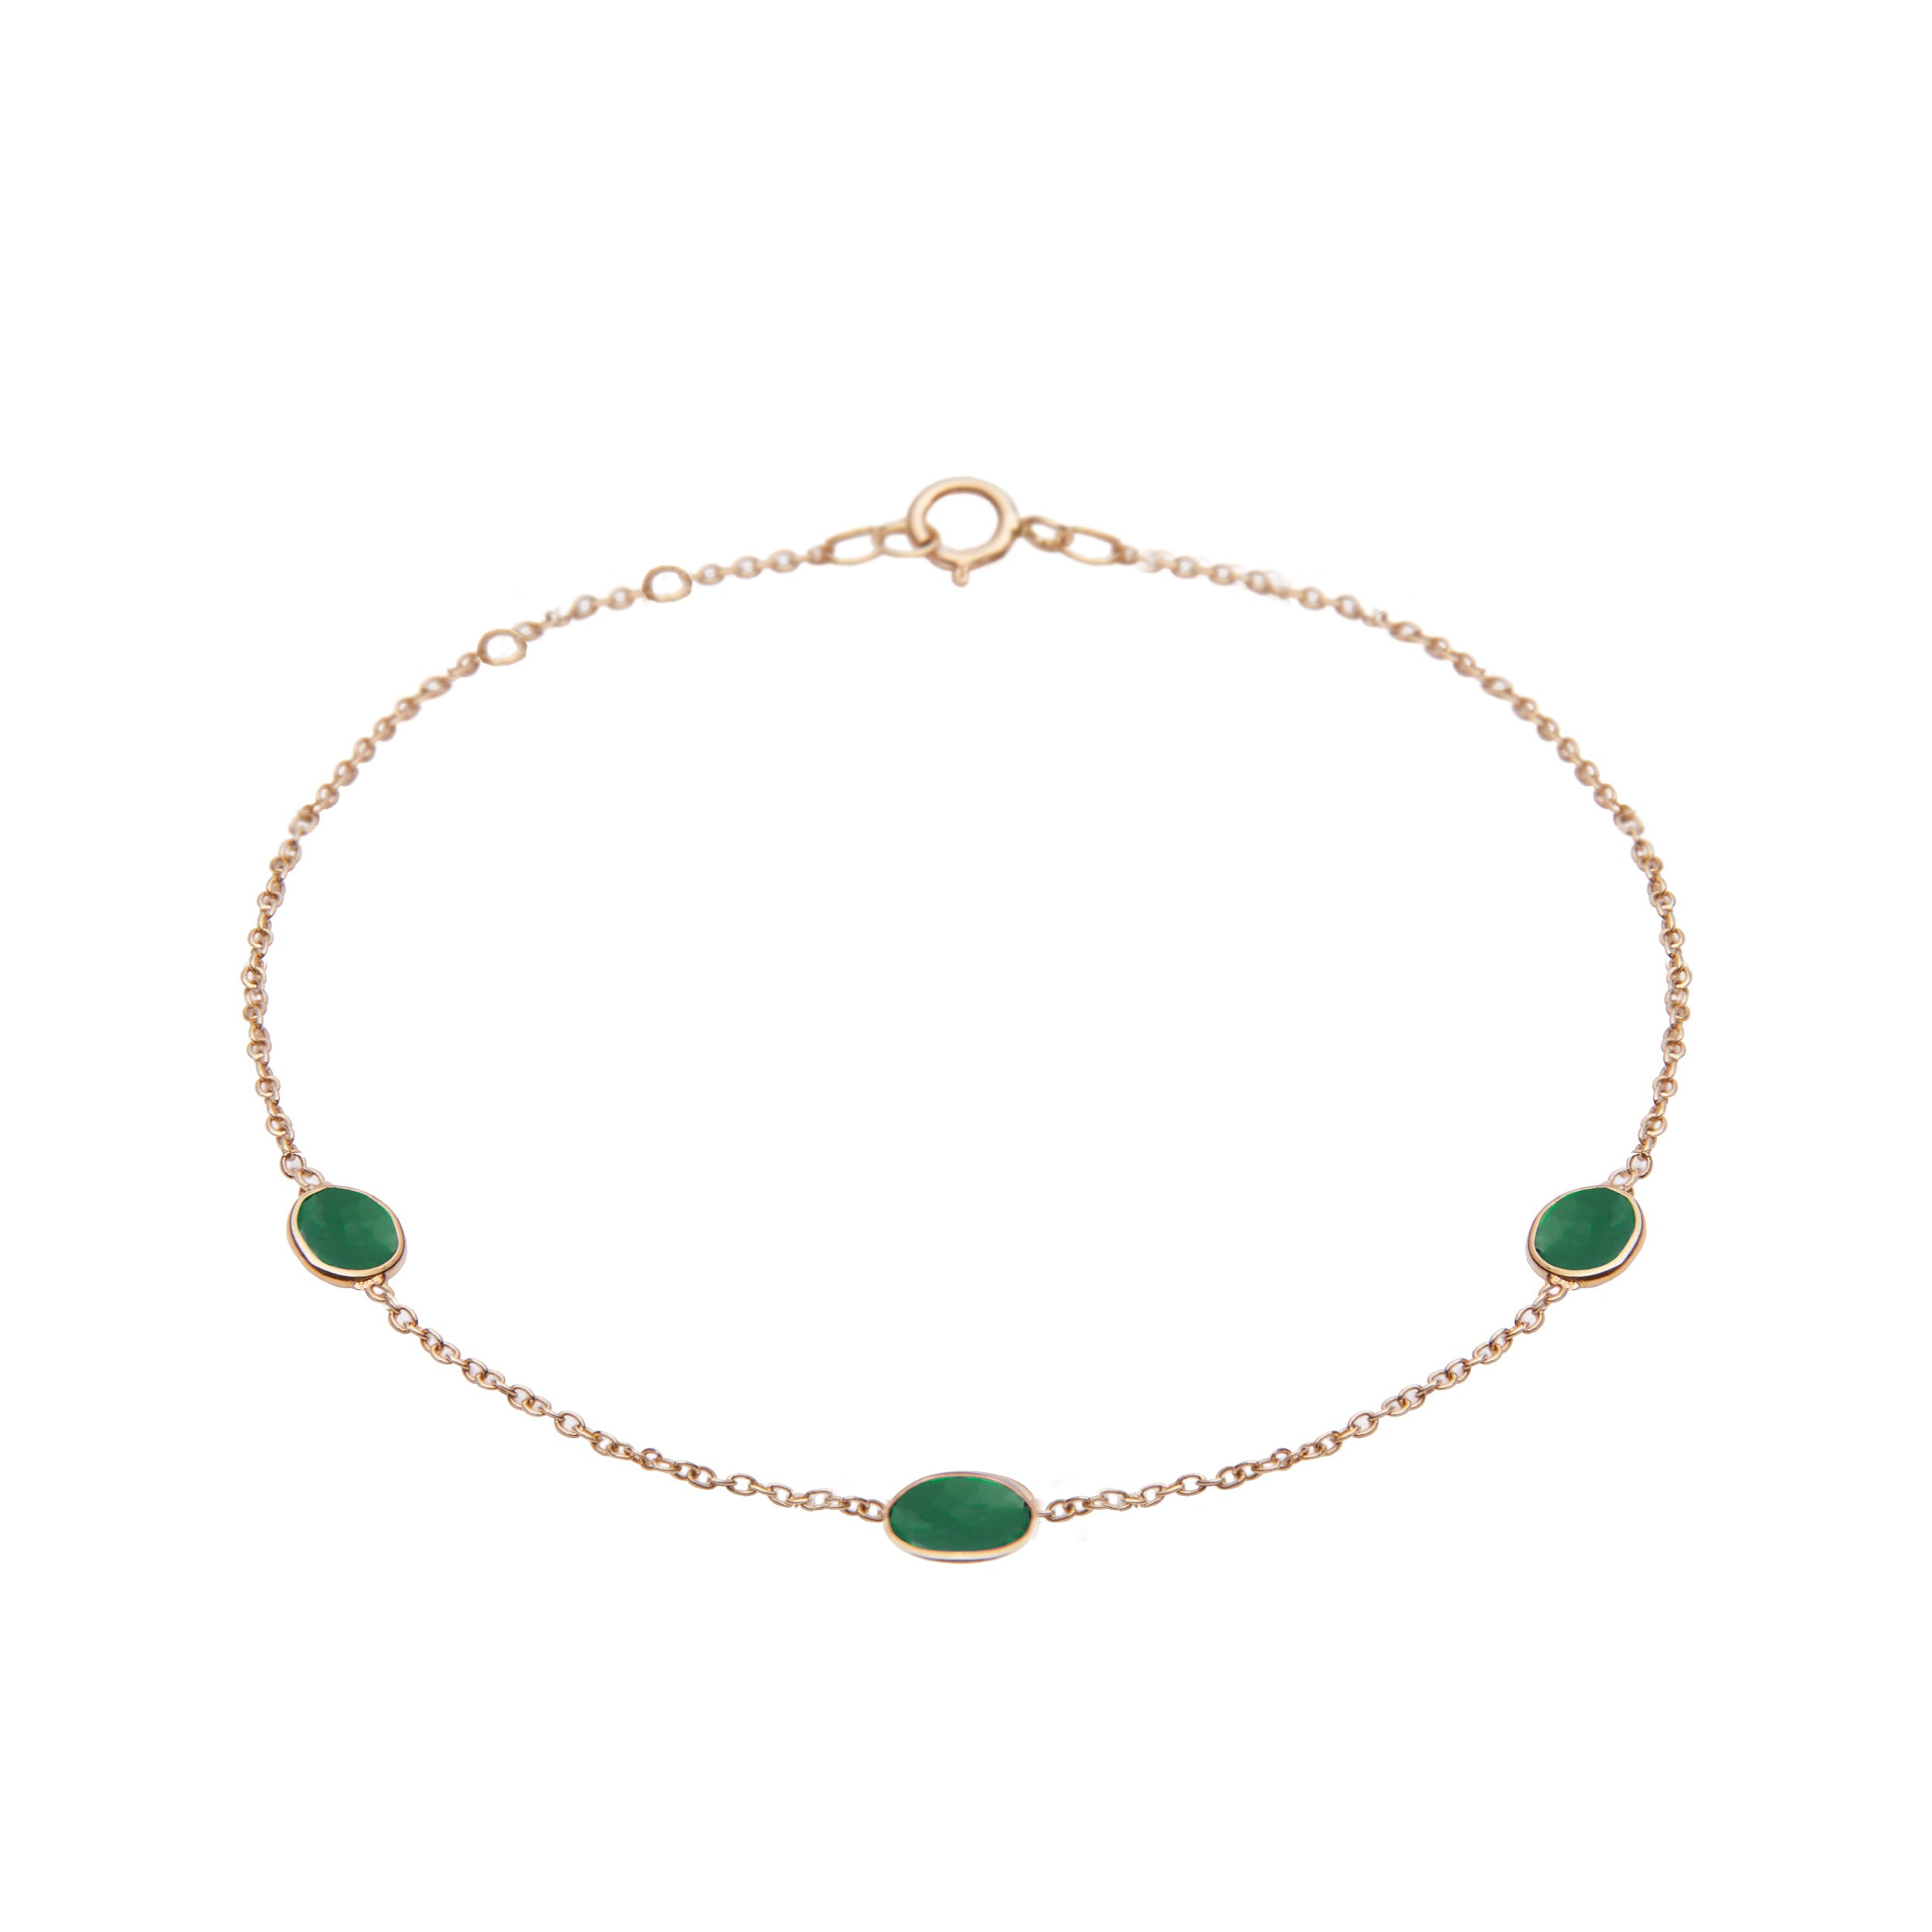 Hepburn Bracelet in Gold with Emerald